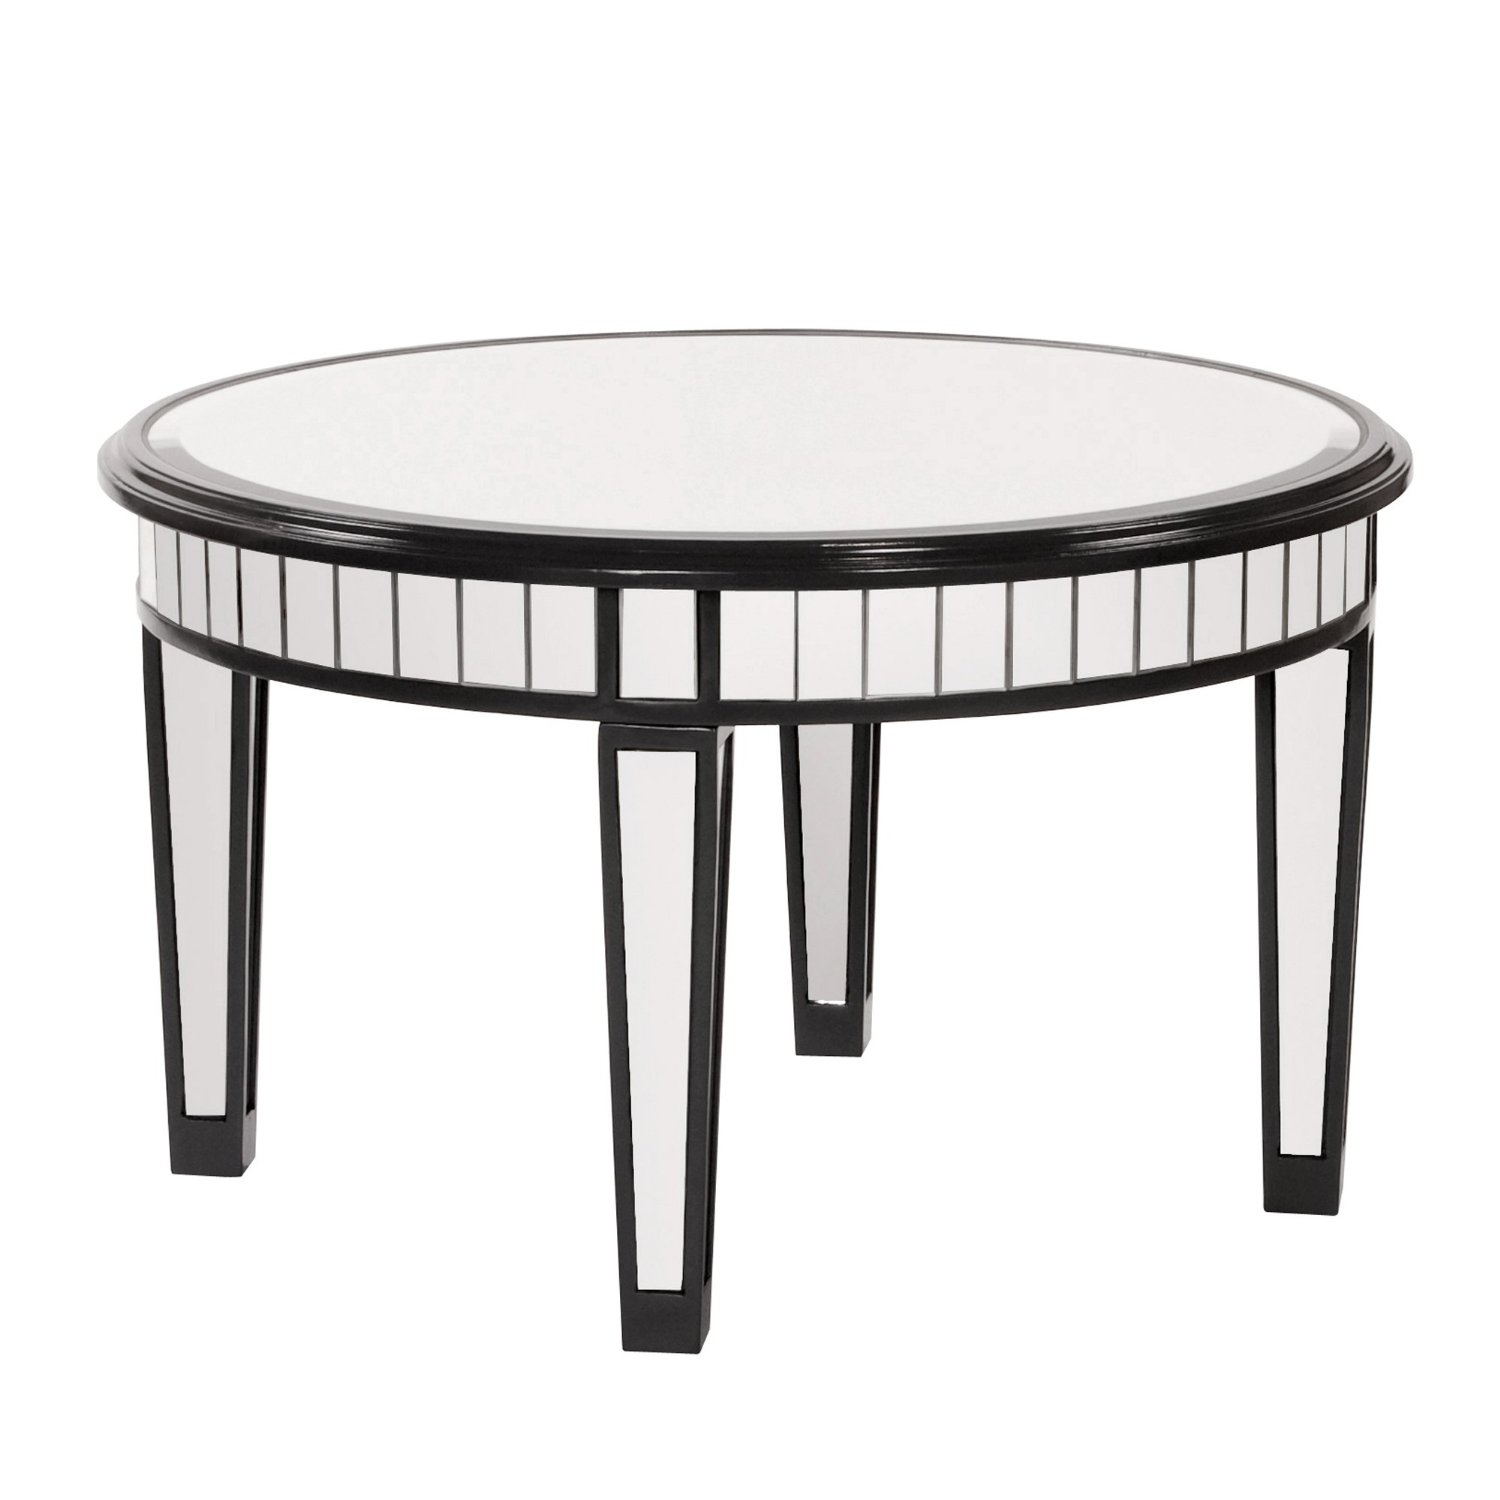 Mirrored Coffee Table Round Circle Mirrored Coffee Table Designs Target Mirrored Coffee Table Mirrored Coffee Table Sets (Image 5 of 10)